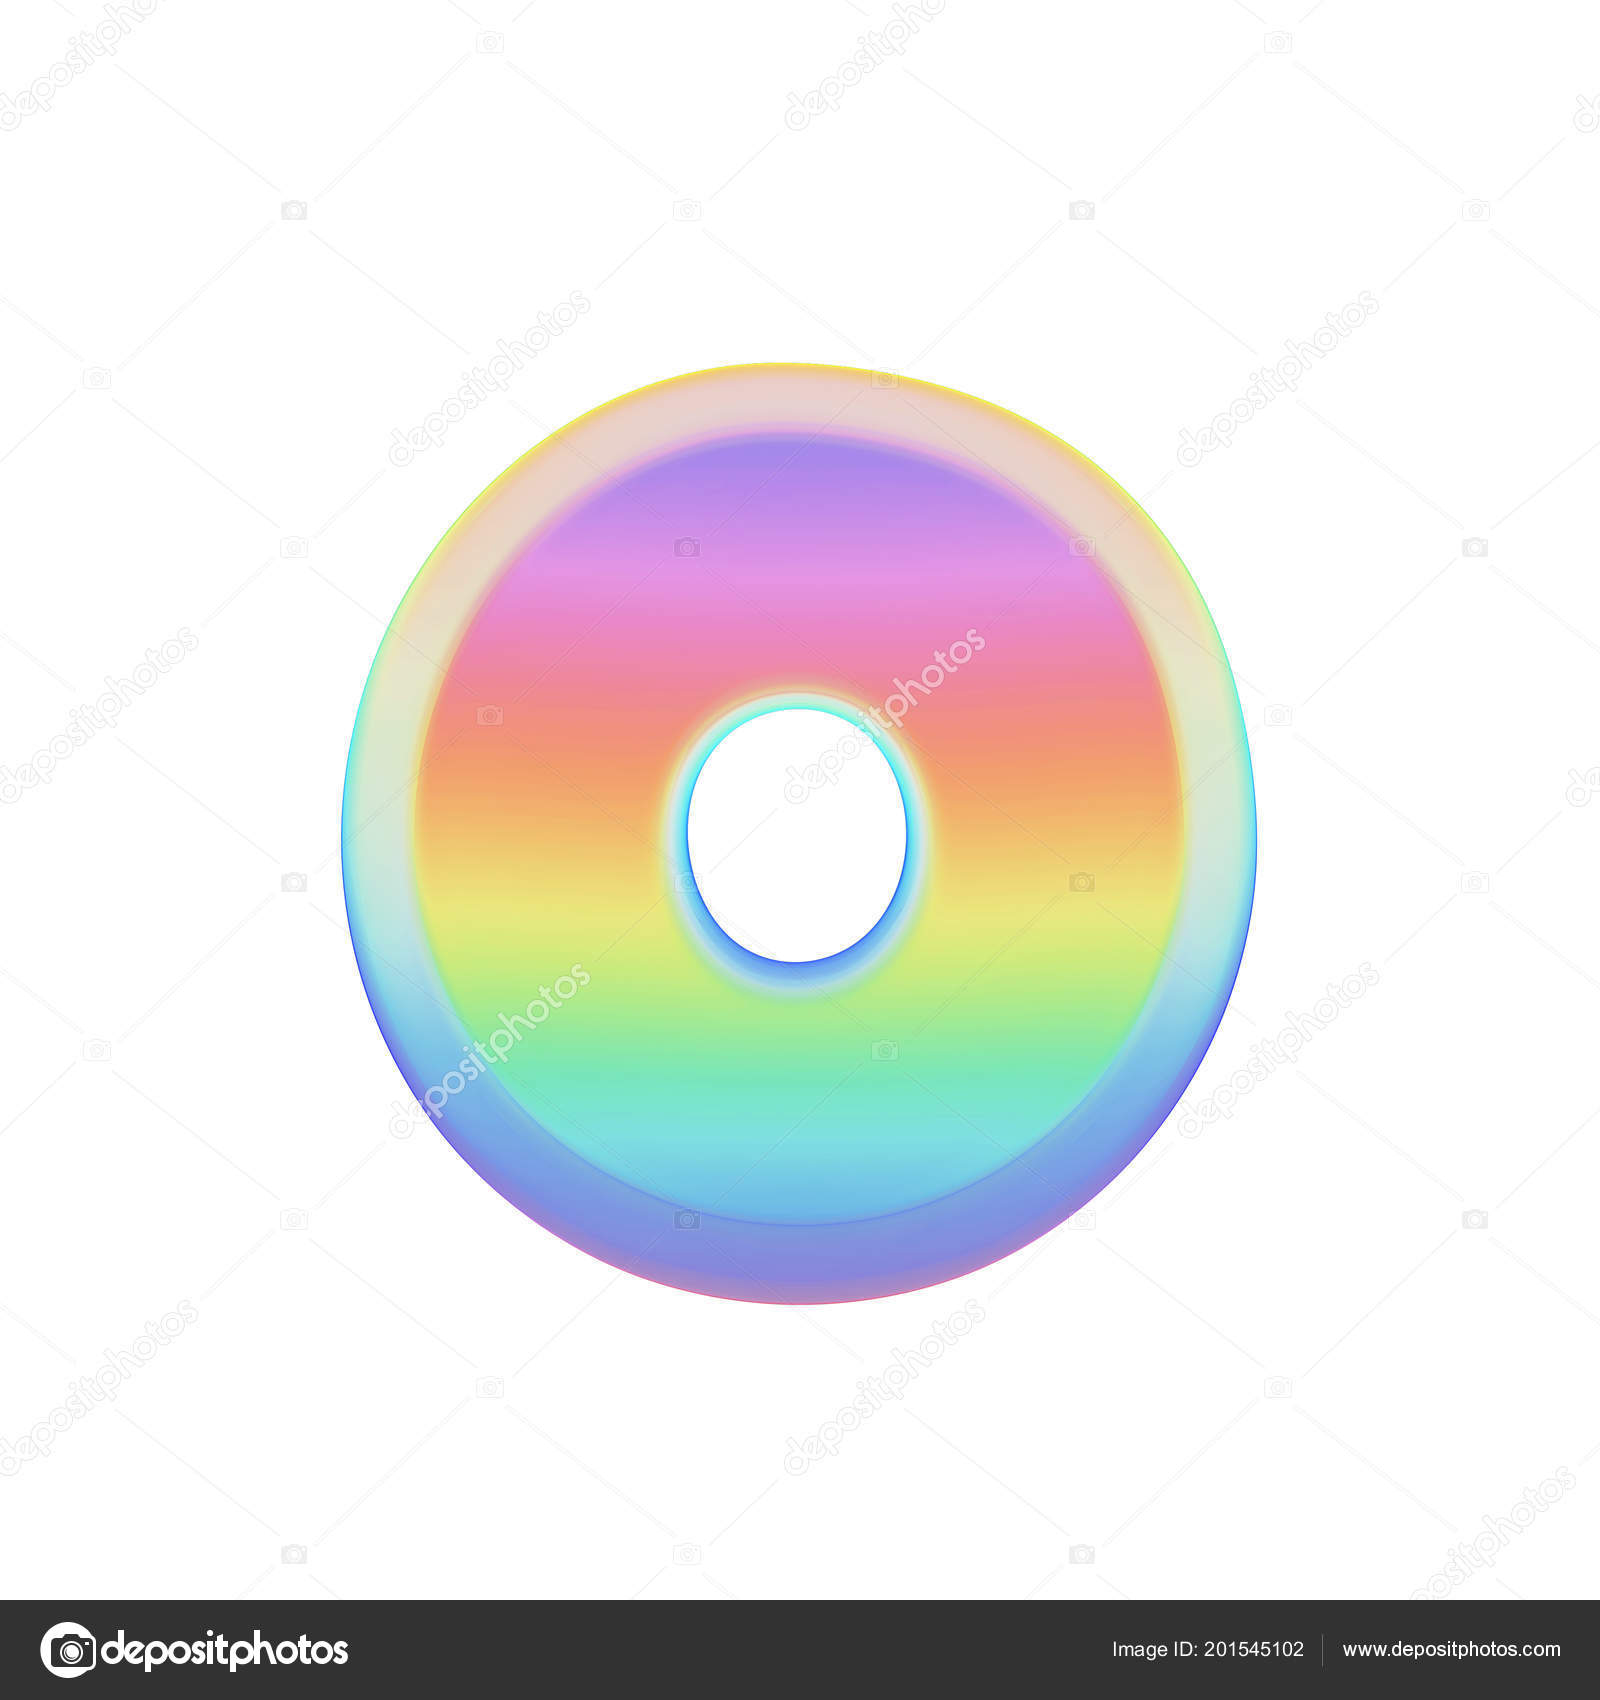 Alphabet Letter O Uppercase Rainbow Font Made Of Bright Soap Bubble